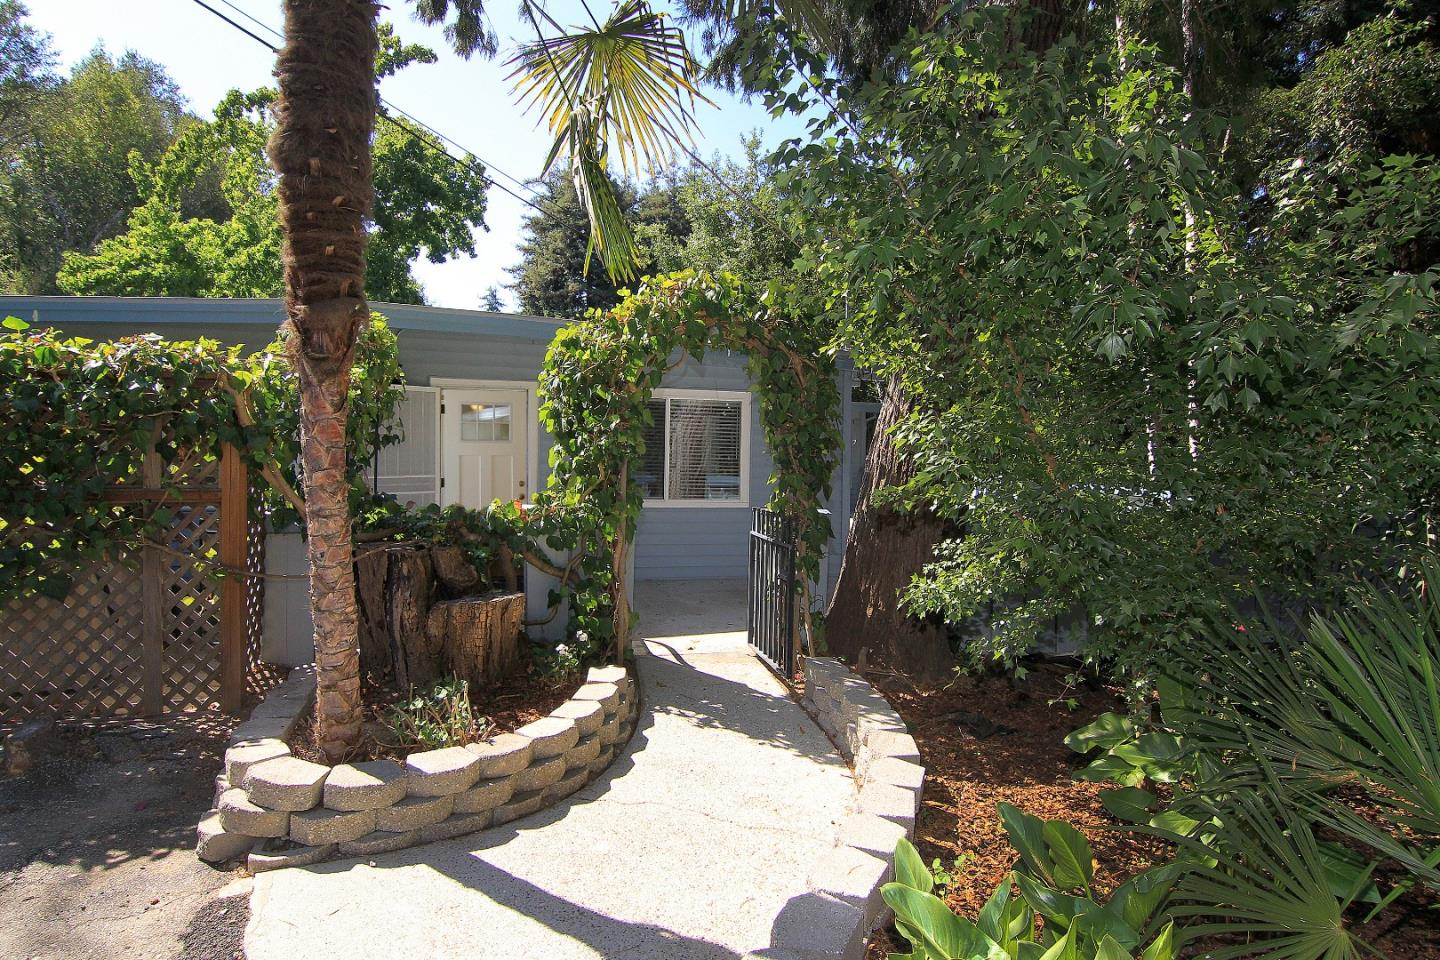 This is a rare find.  Single level home with second unit and a substantial workshop and garage on a 1+ acre lot.  The main home has 4 bedrooms and 2 updated bathrooms with an open floor plan kitchen/living room and adjoining pantry.  French doors open onto a large patio with views of the redwoods and canyon.  Separating the two homes is an enclosed garden area with 2 raised wood planters.  The one bedroom second unit has a new kitchen and updated bathroom with a private deck at the rear.  Both units have been newly painted, have tankless water heaters and new wood style linoleum flooring throughout.  The icing on the cake is a large workshop with a multi car garage.  There are numerous places to park on the property, including two covered parking areas which can accommodate multiple cards and/or recreation vehicle.  This is a unique property offering the bonus of 2 homes plus an expansive workshop.  All square footage quotes are estimates.  Buyer to verify.